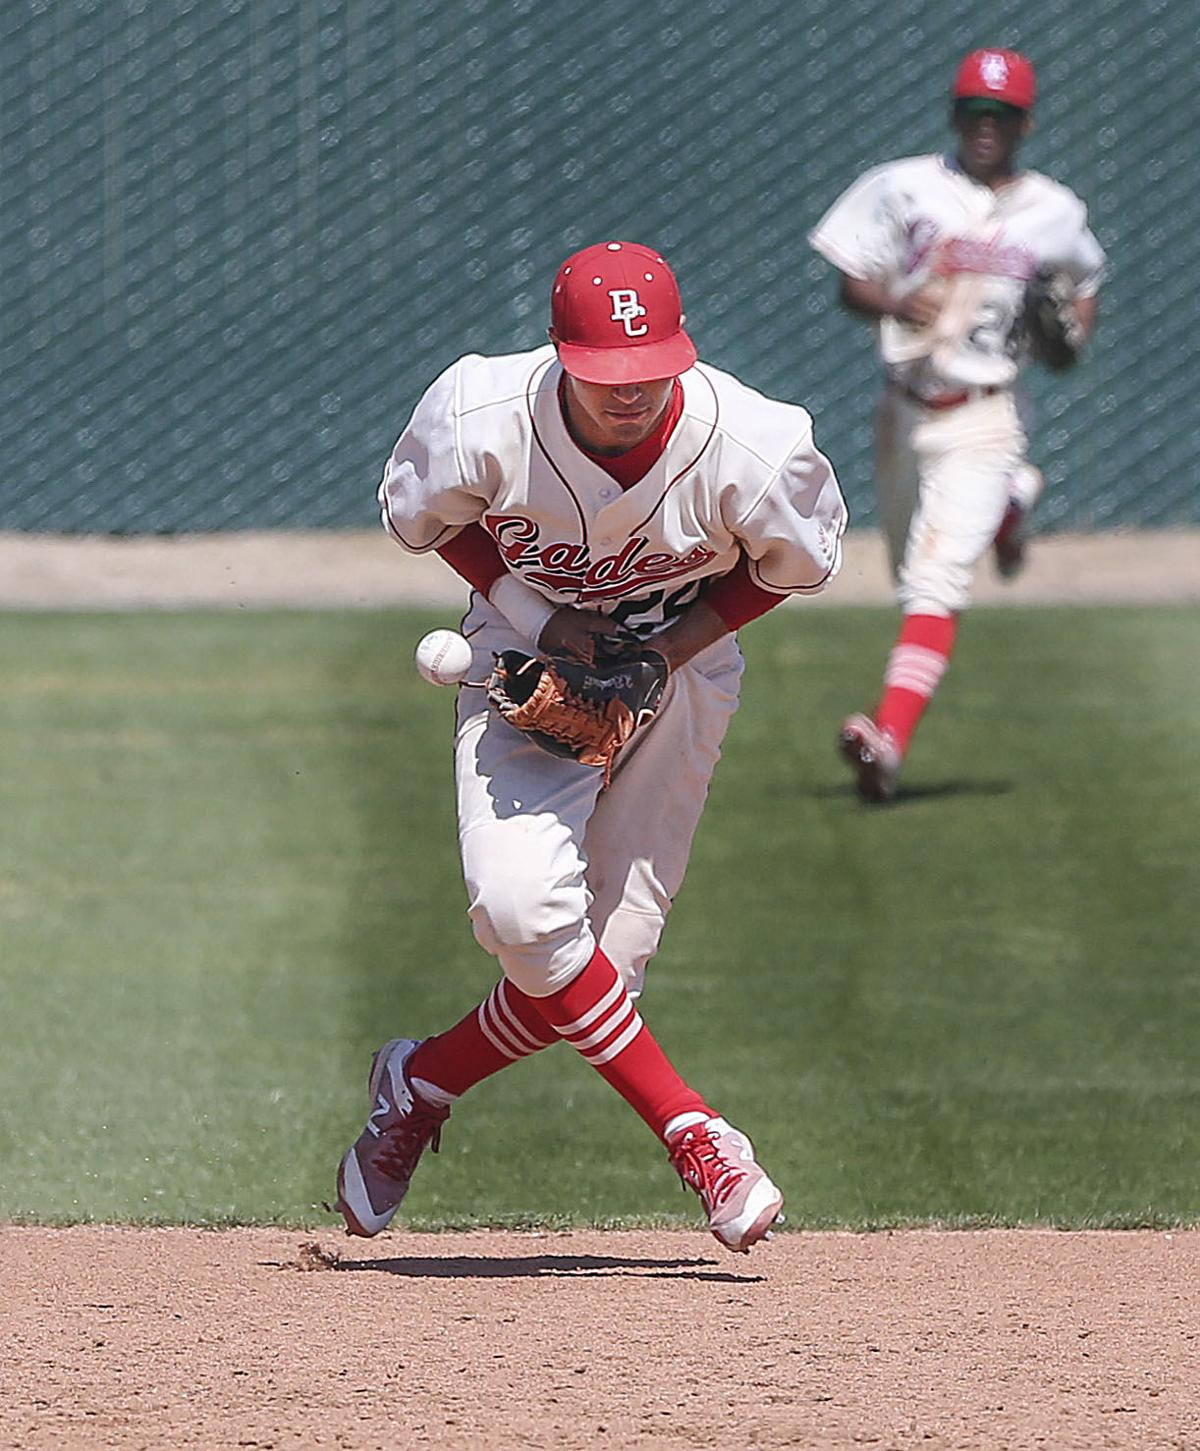 BC baseball struggles in all phases in loss to Reedley